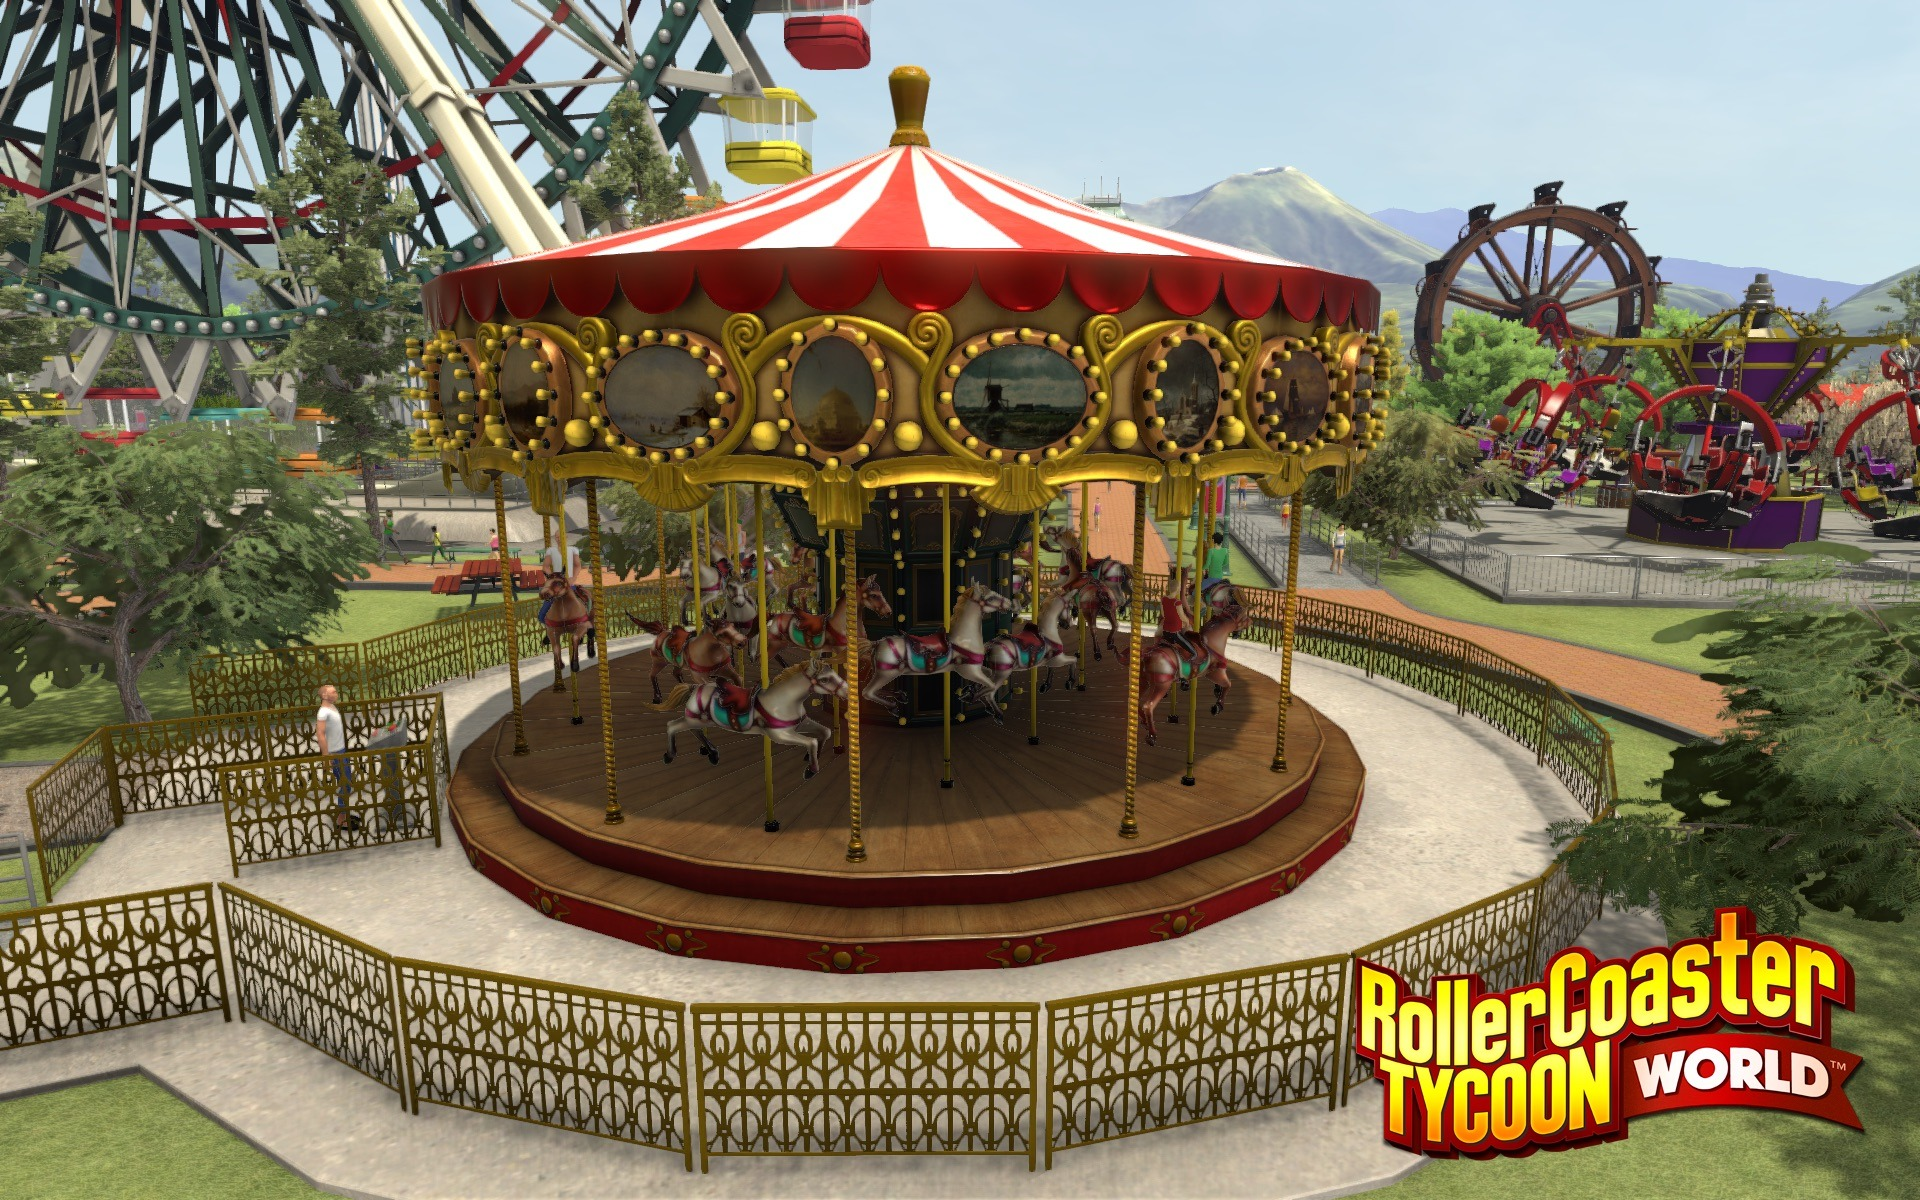 RollerCoaster Tycoon World 1441454784-754-noelshack-capture-d-ecran-pc-simulation